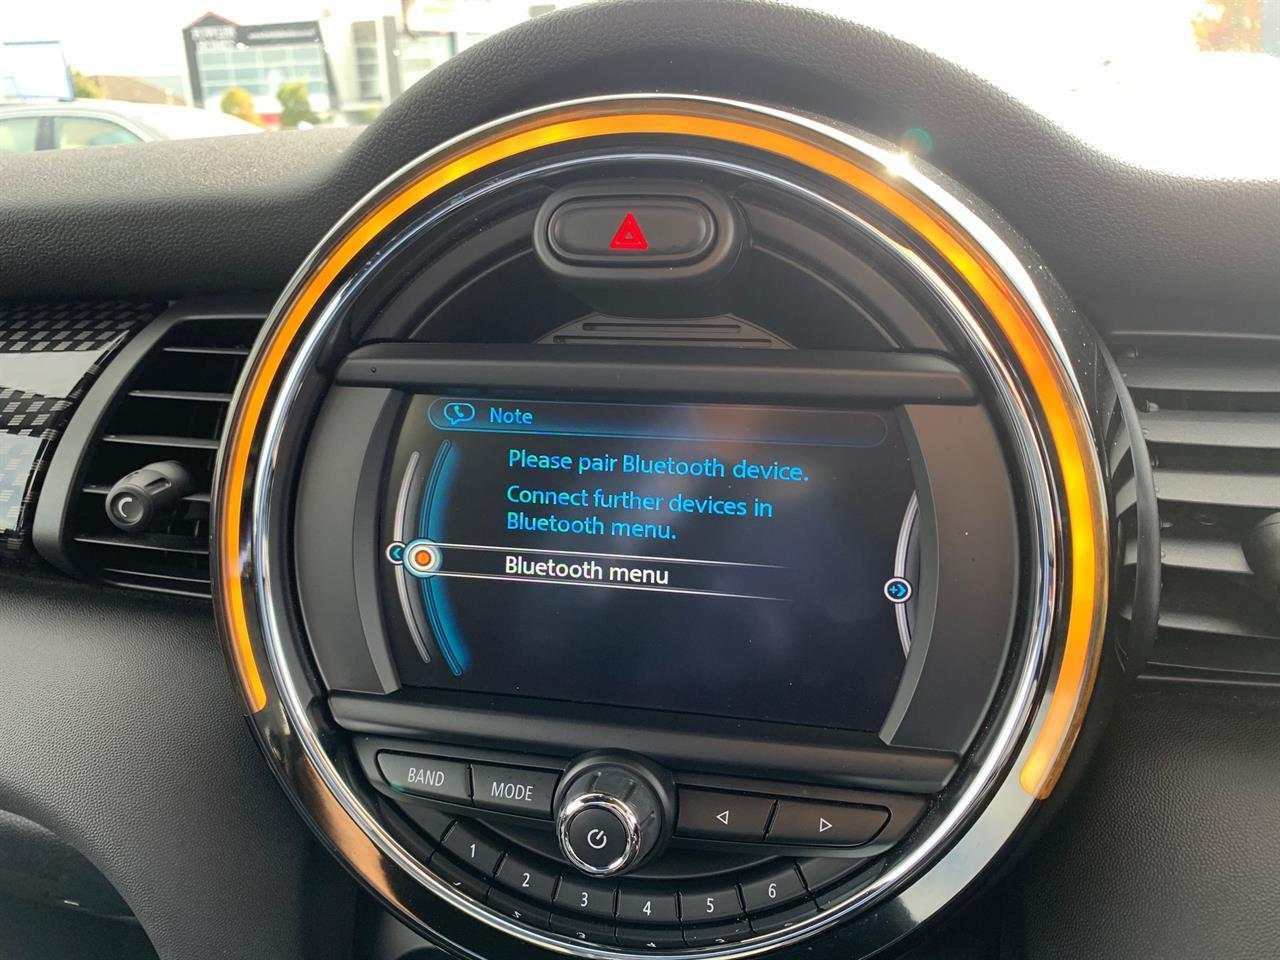 image-11, 2018 Mini Cooper S 2.0T 6 Speed Manual Cabriolet N at Christchurch